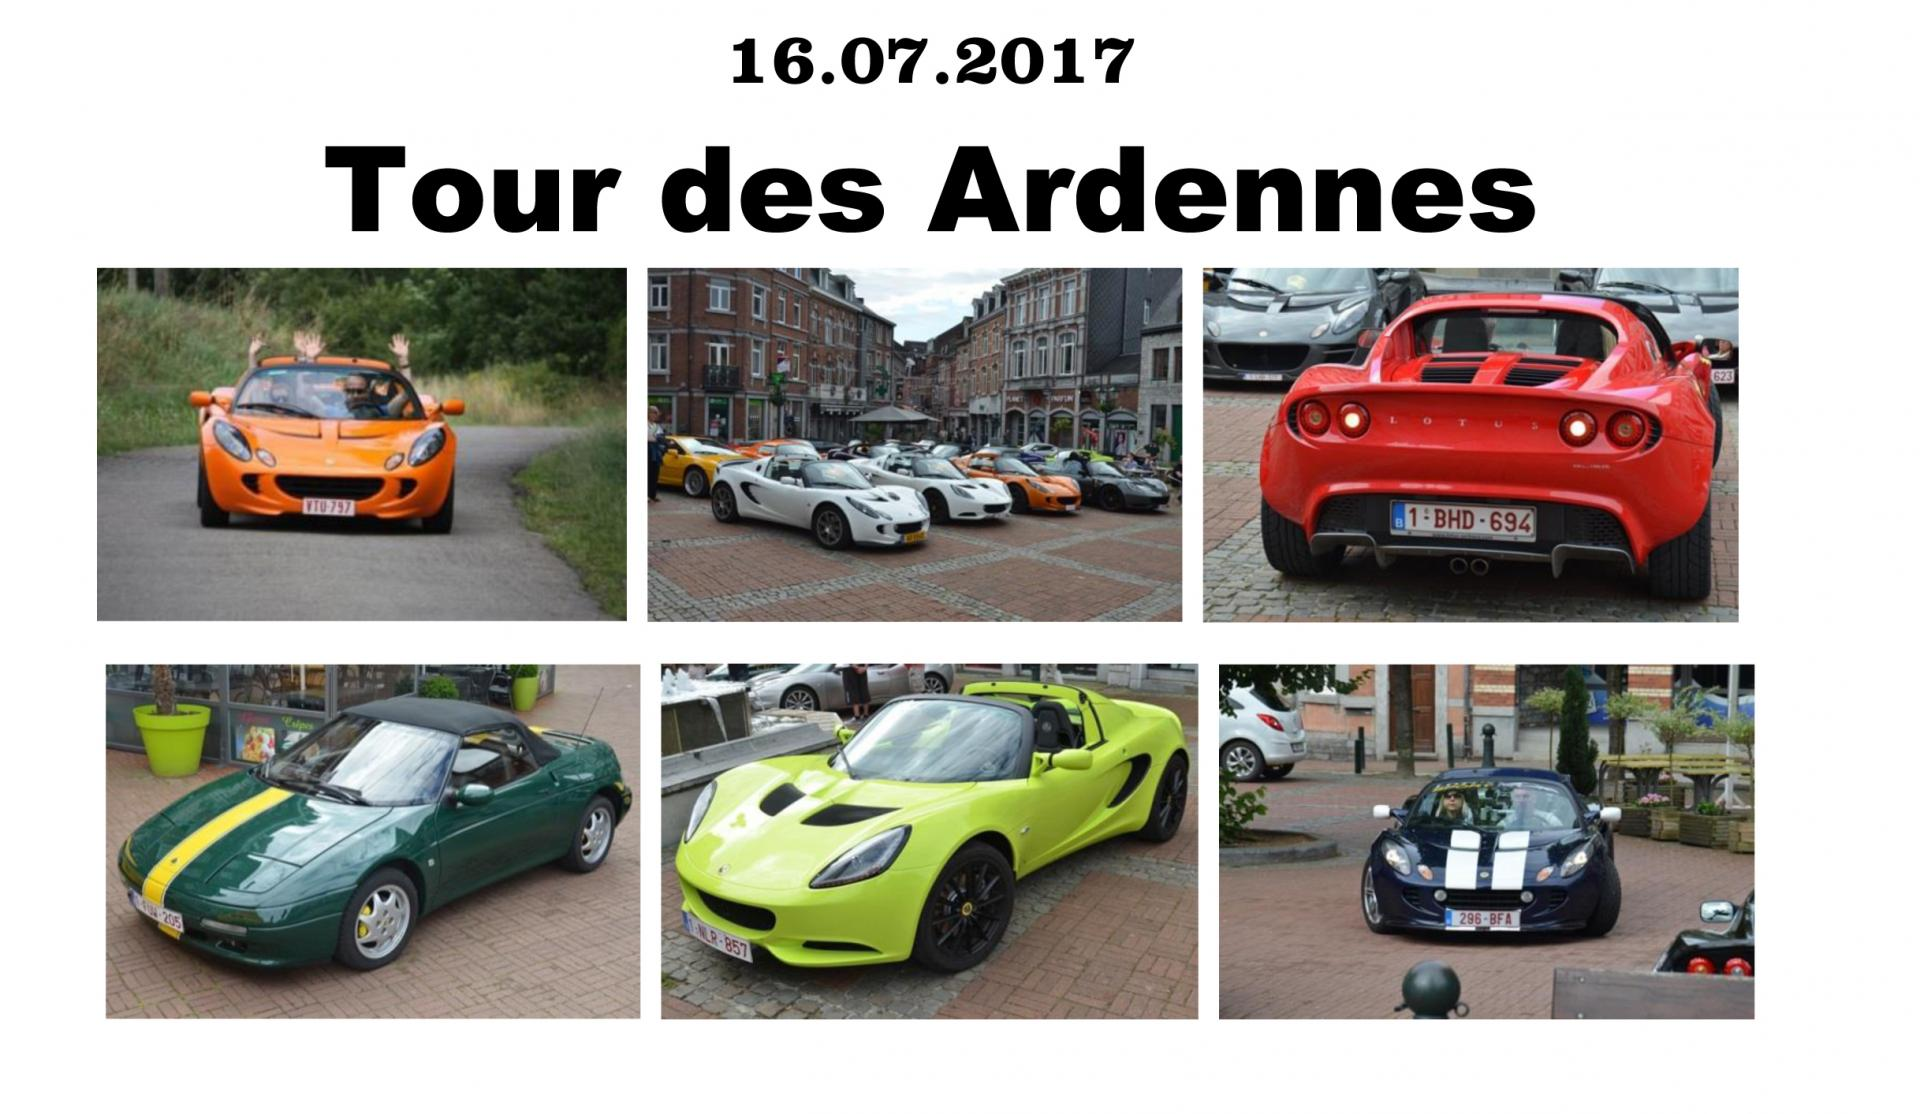 Tour des ardennes copie